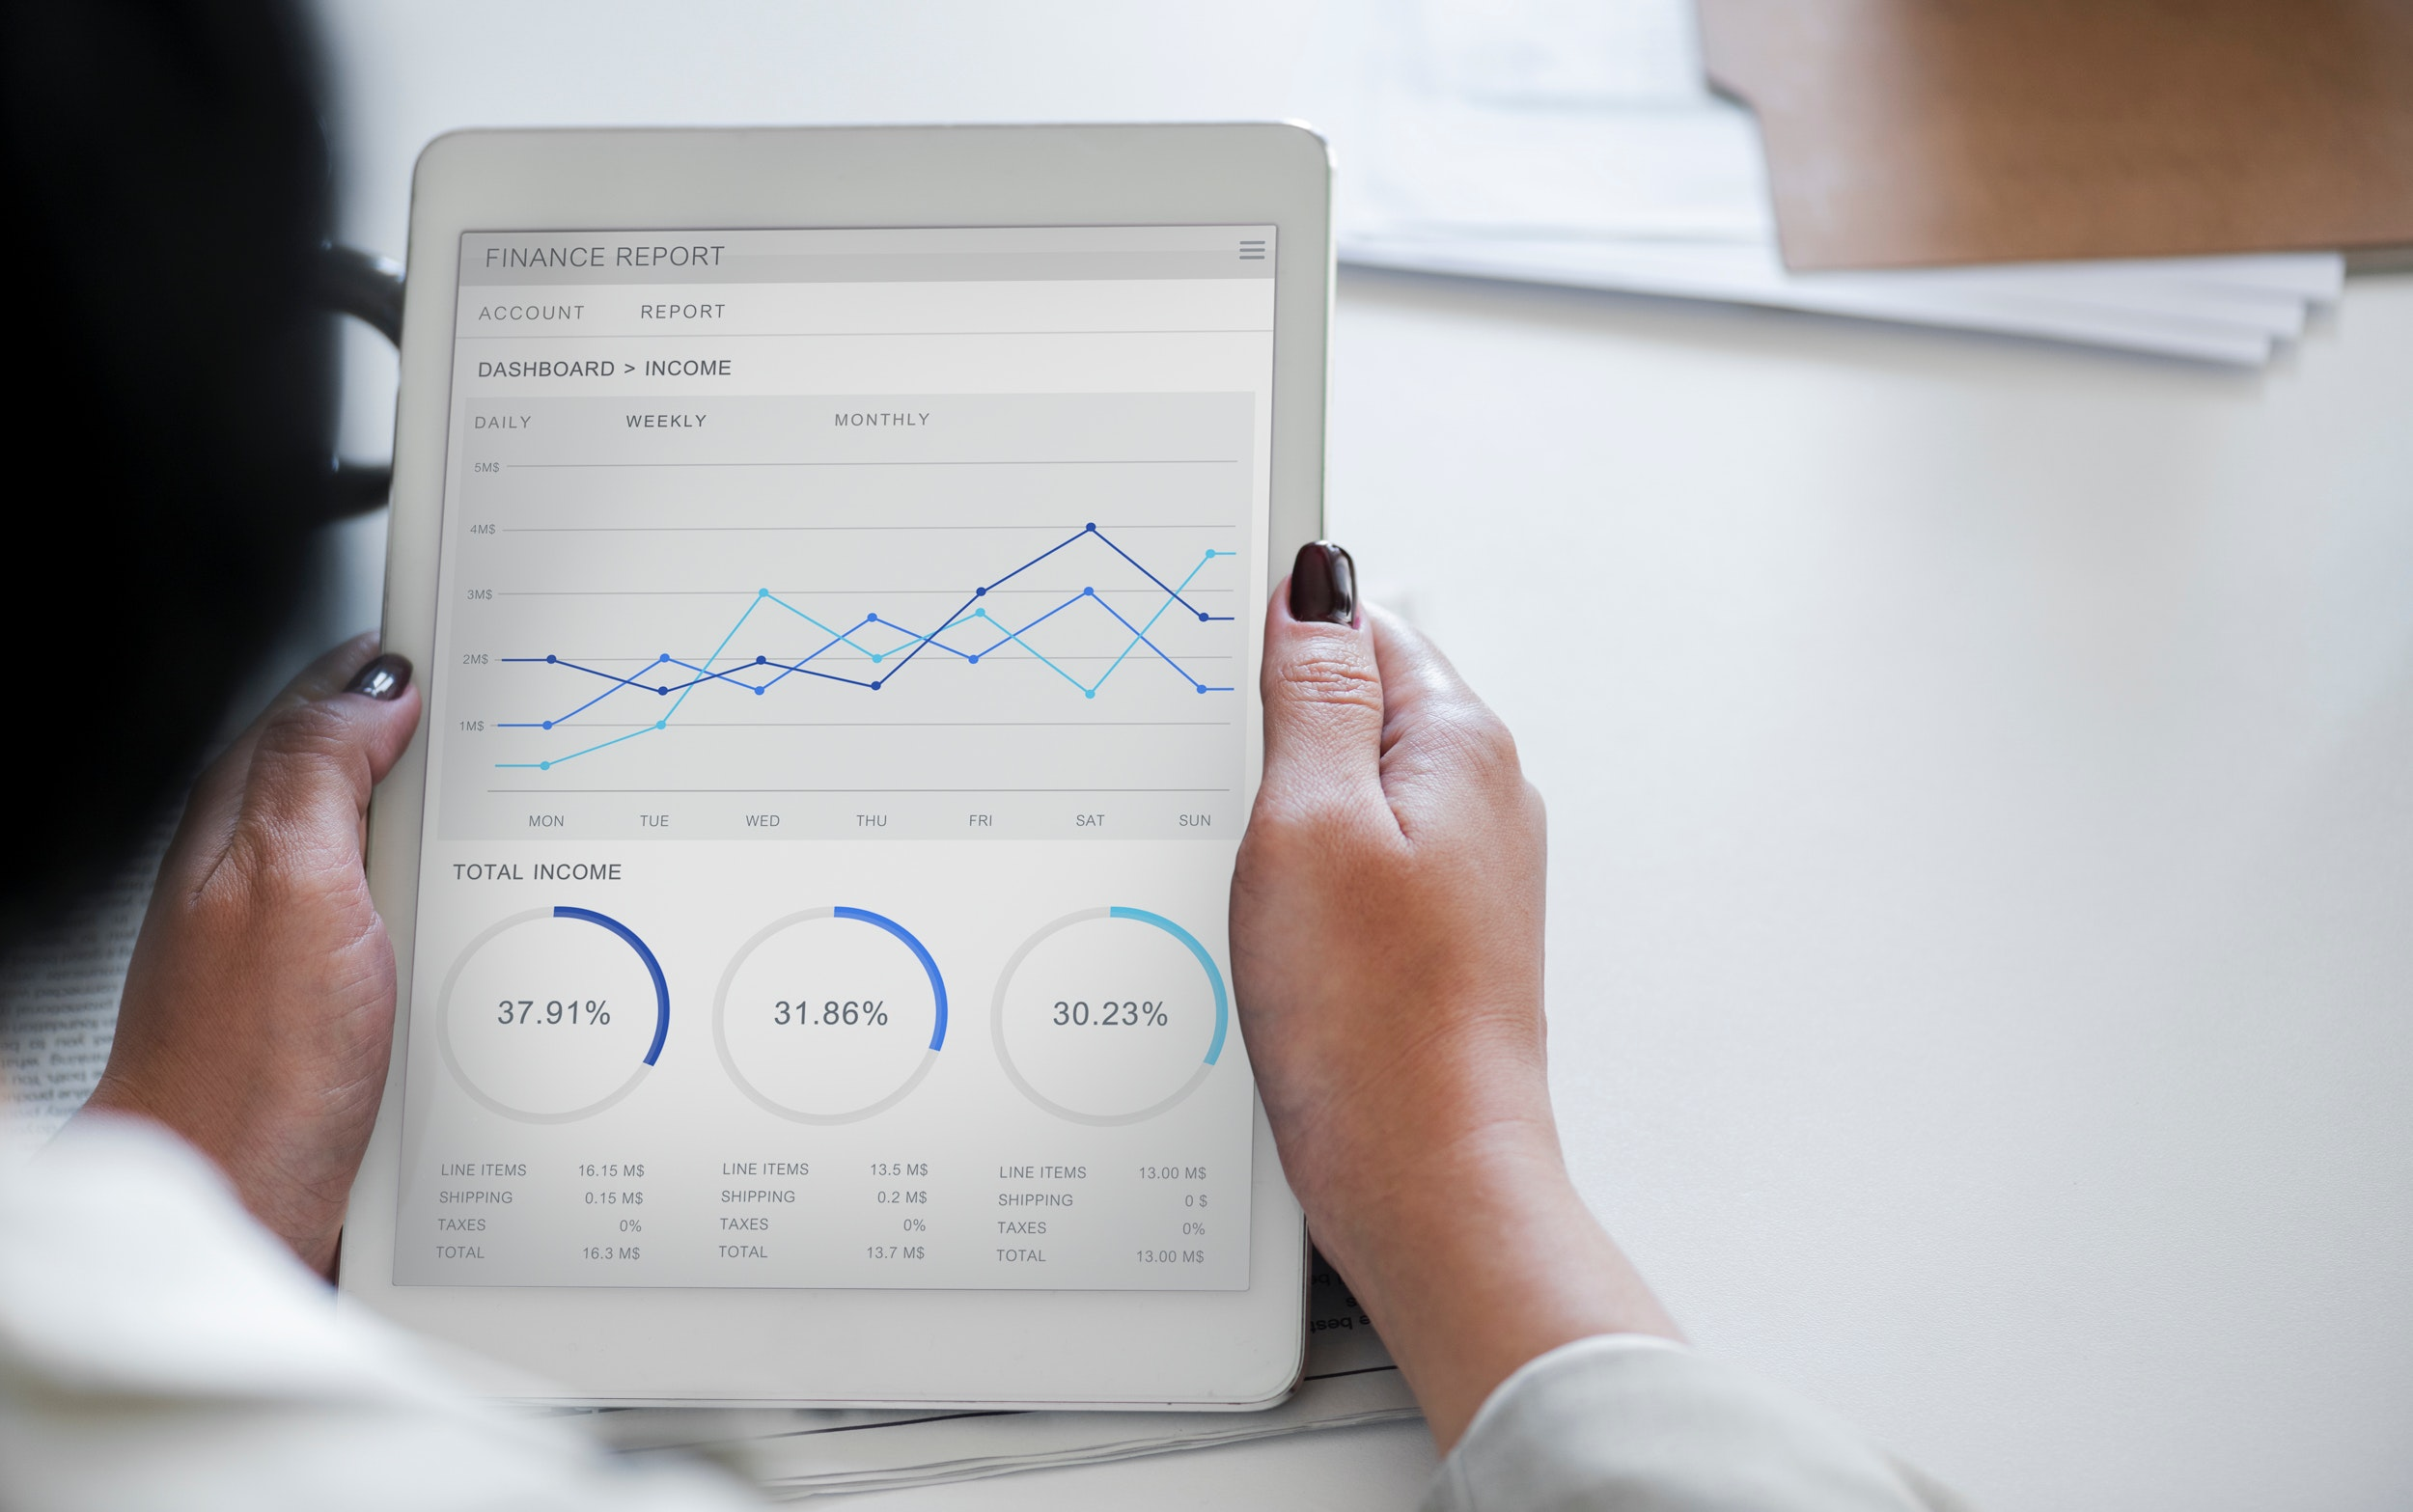 Case Study: Measuring performance with unreliable data